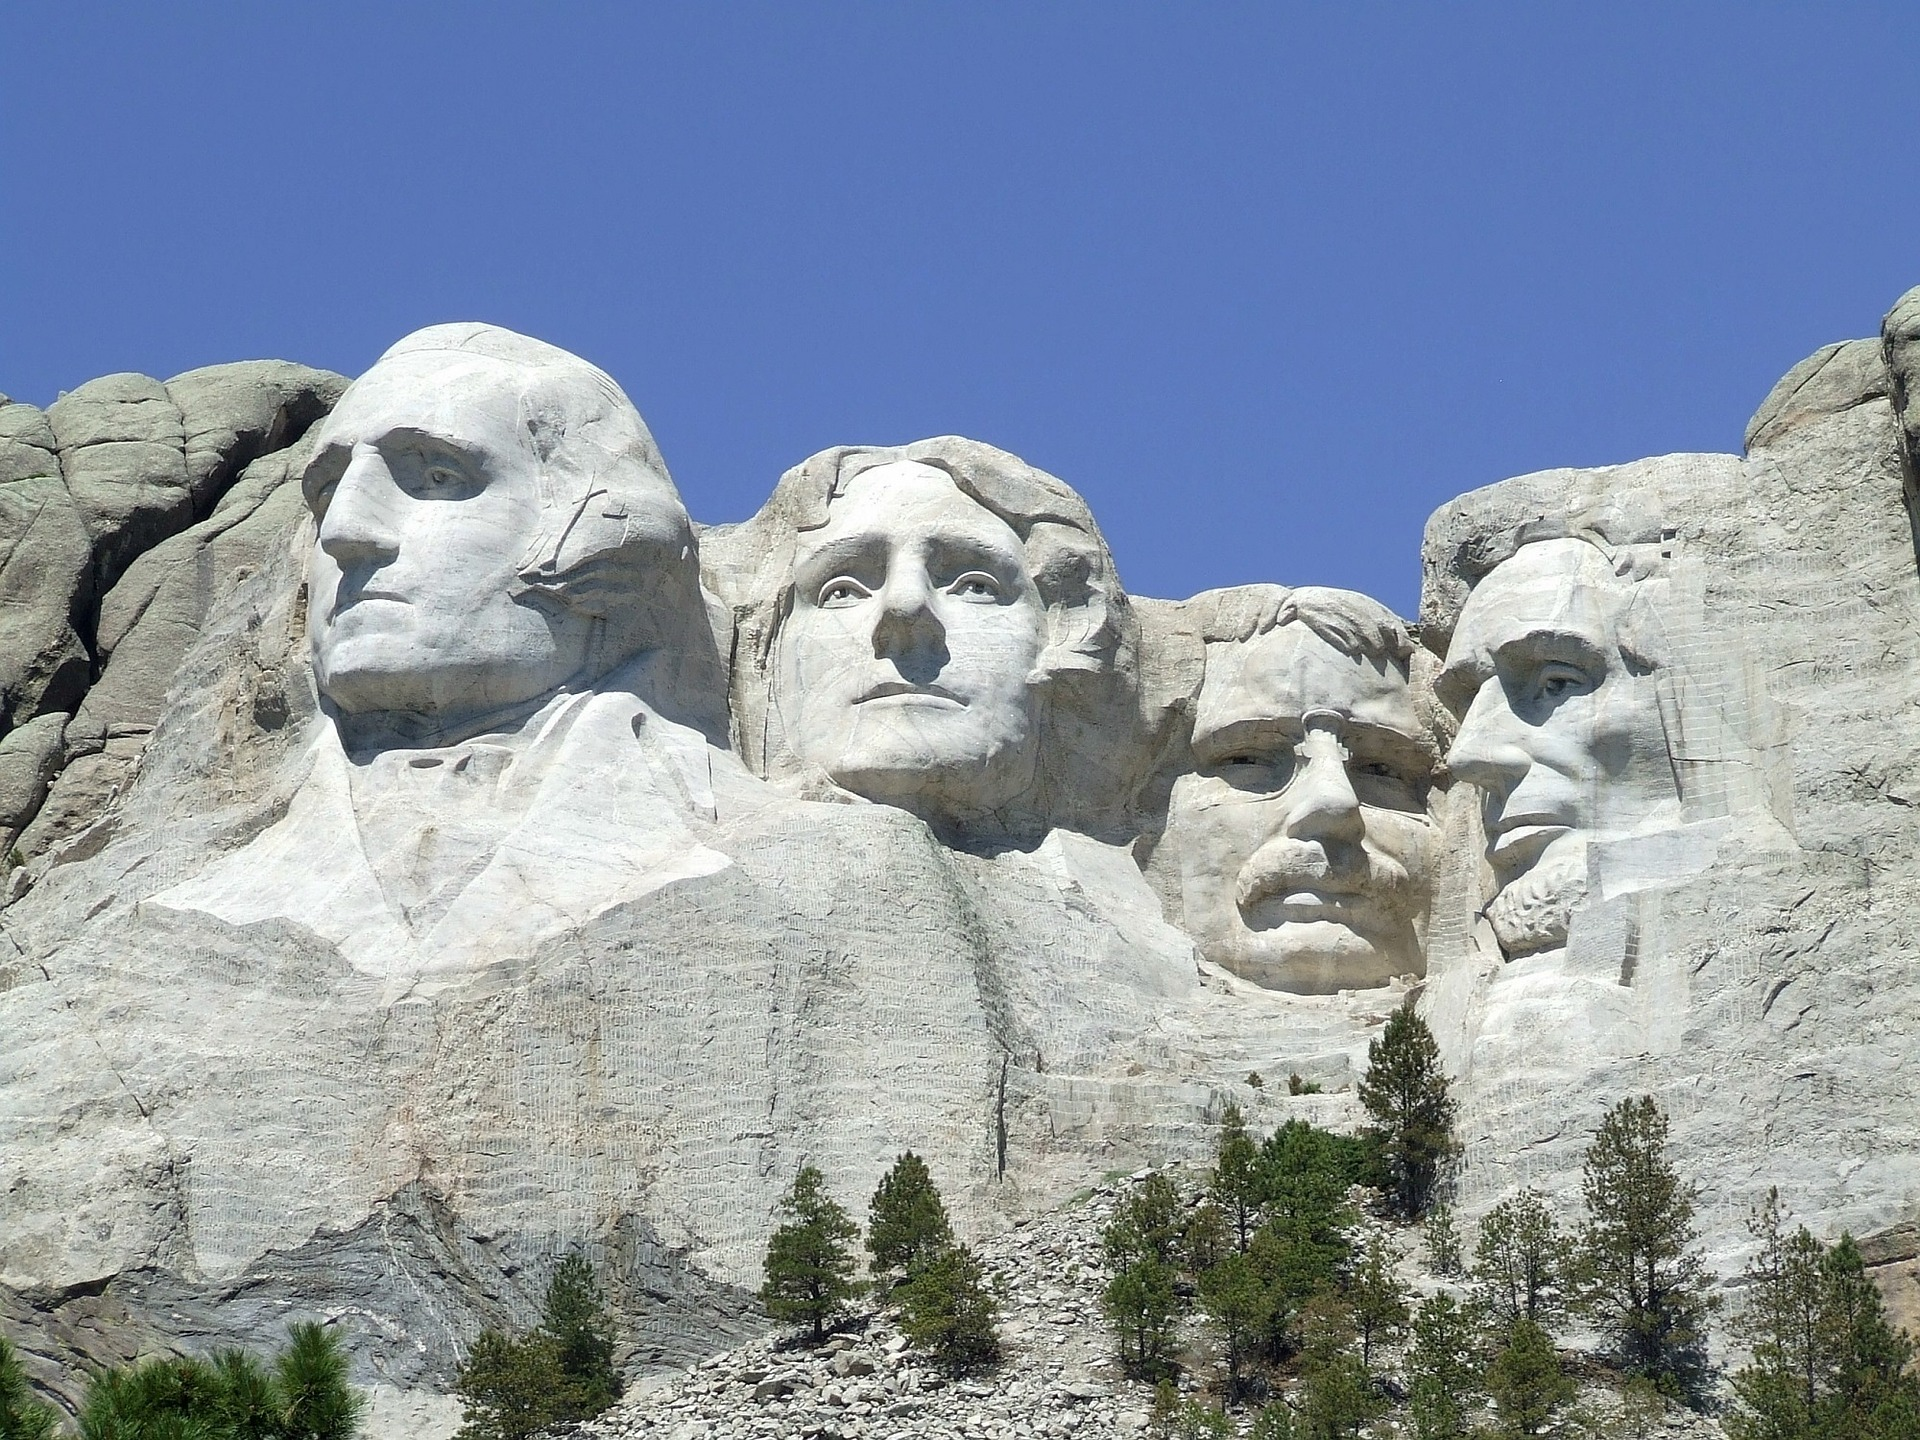 Be sure to visit Mount Rushmore National Memorial and see who can name all the Presidents.